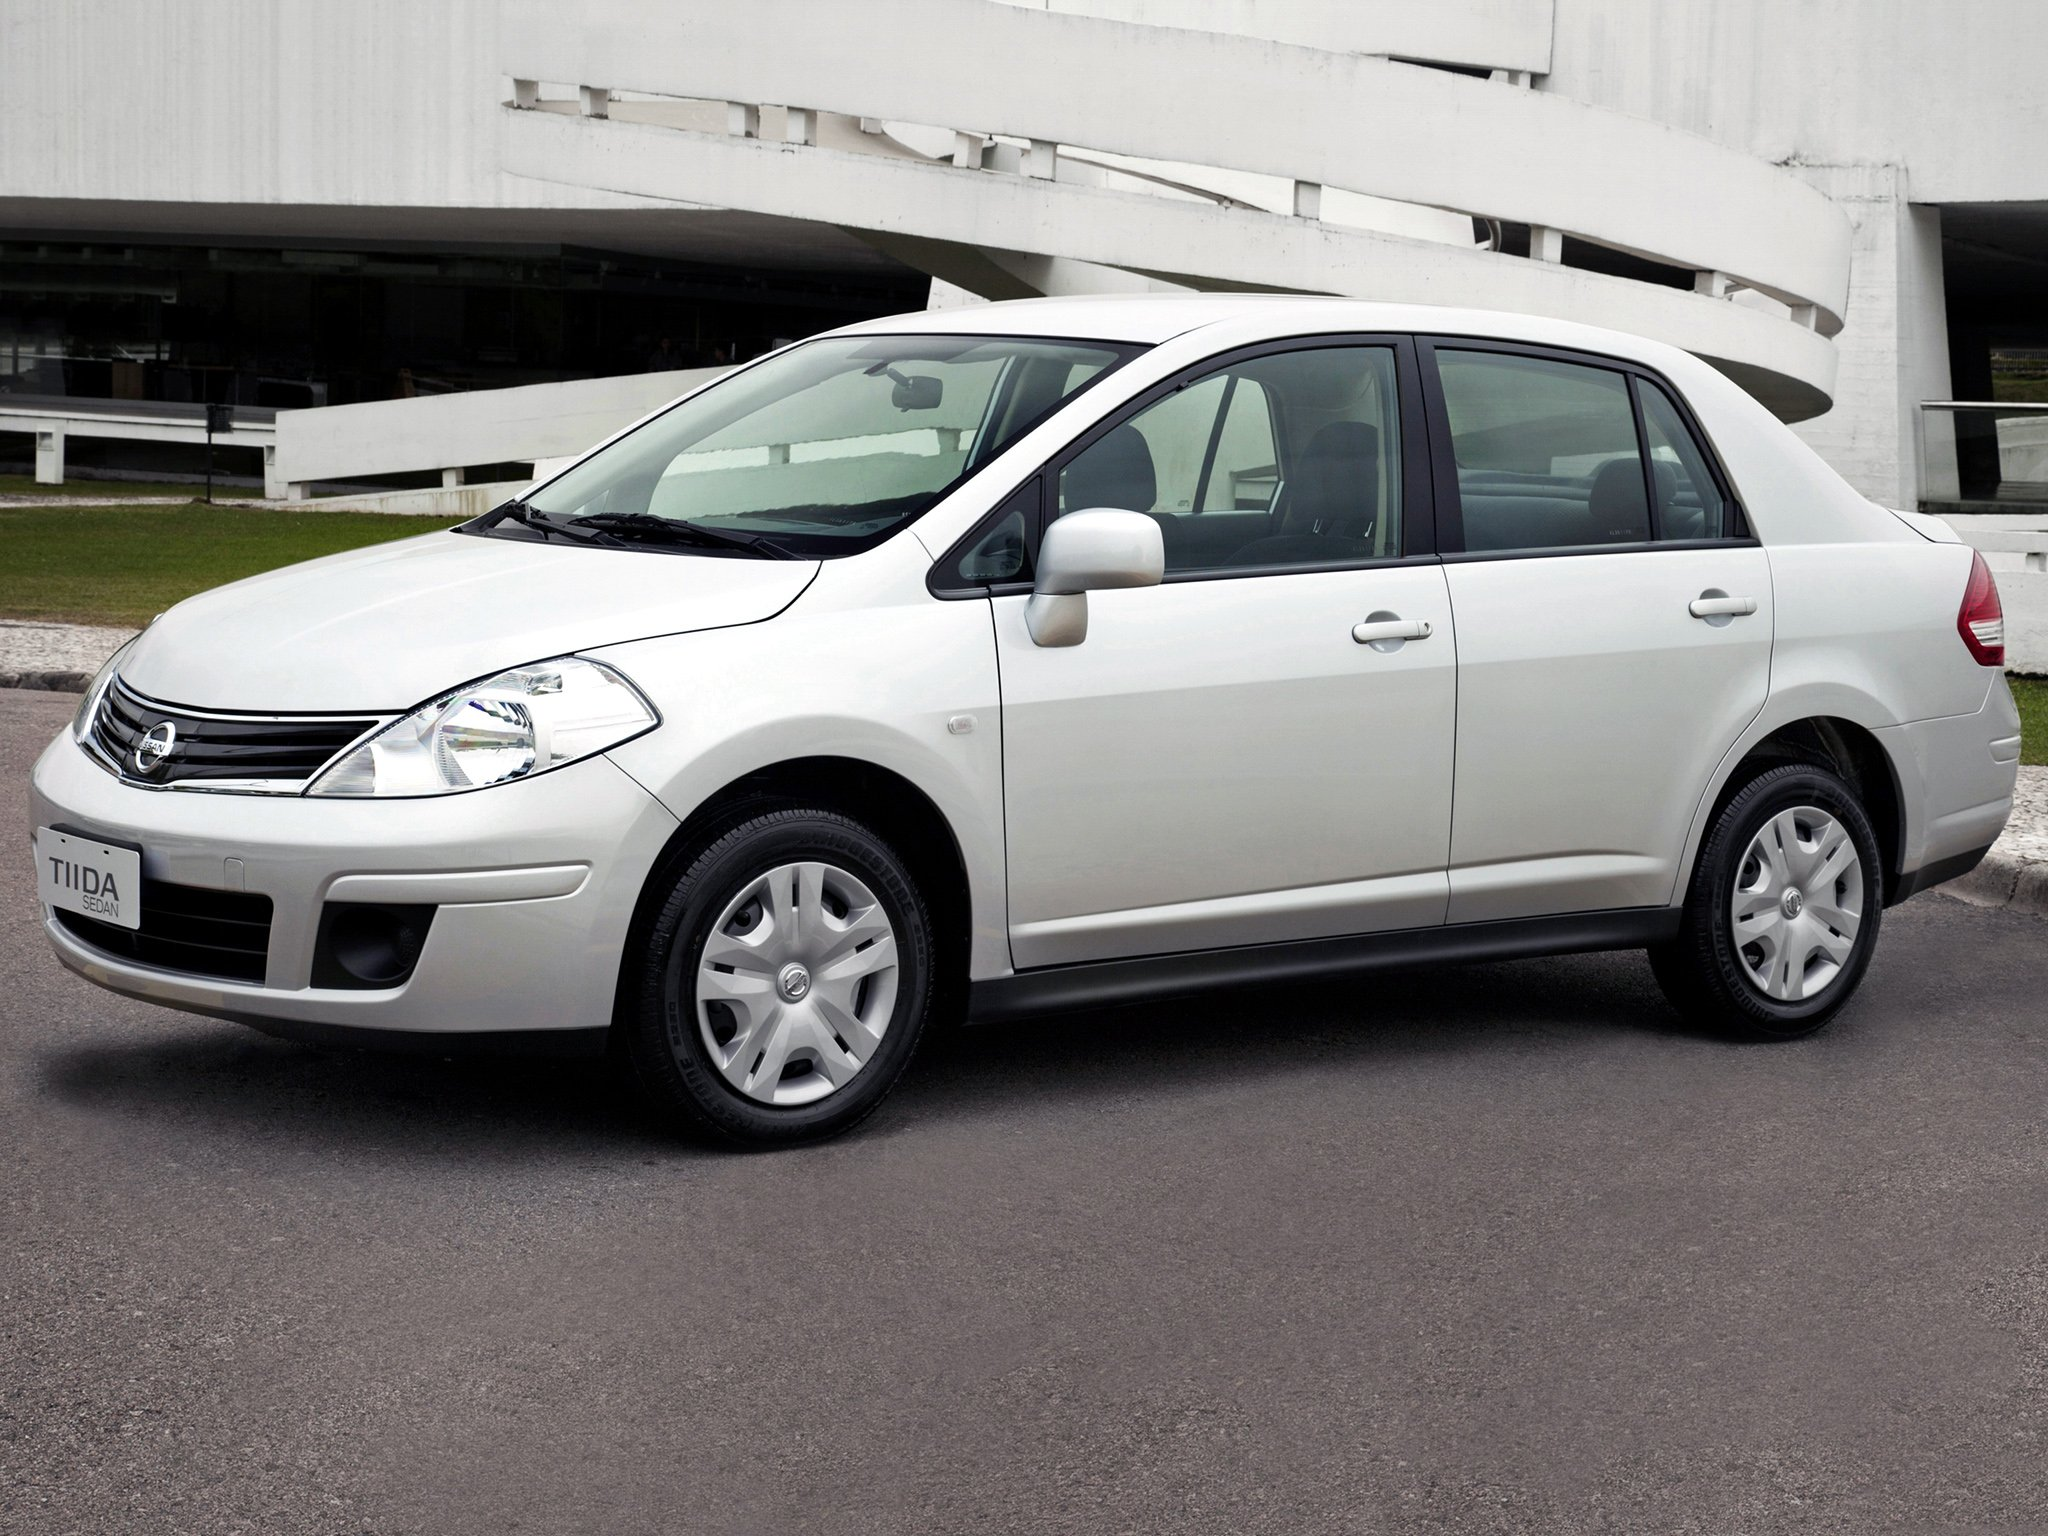 Cars nissan tiida sedan 2010